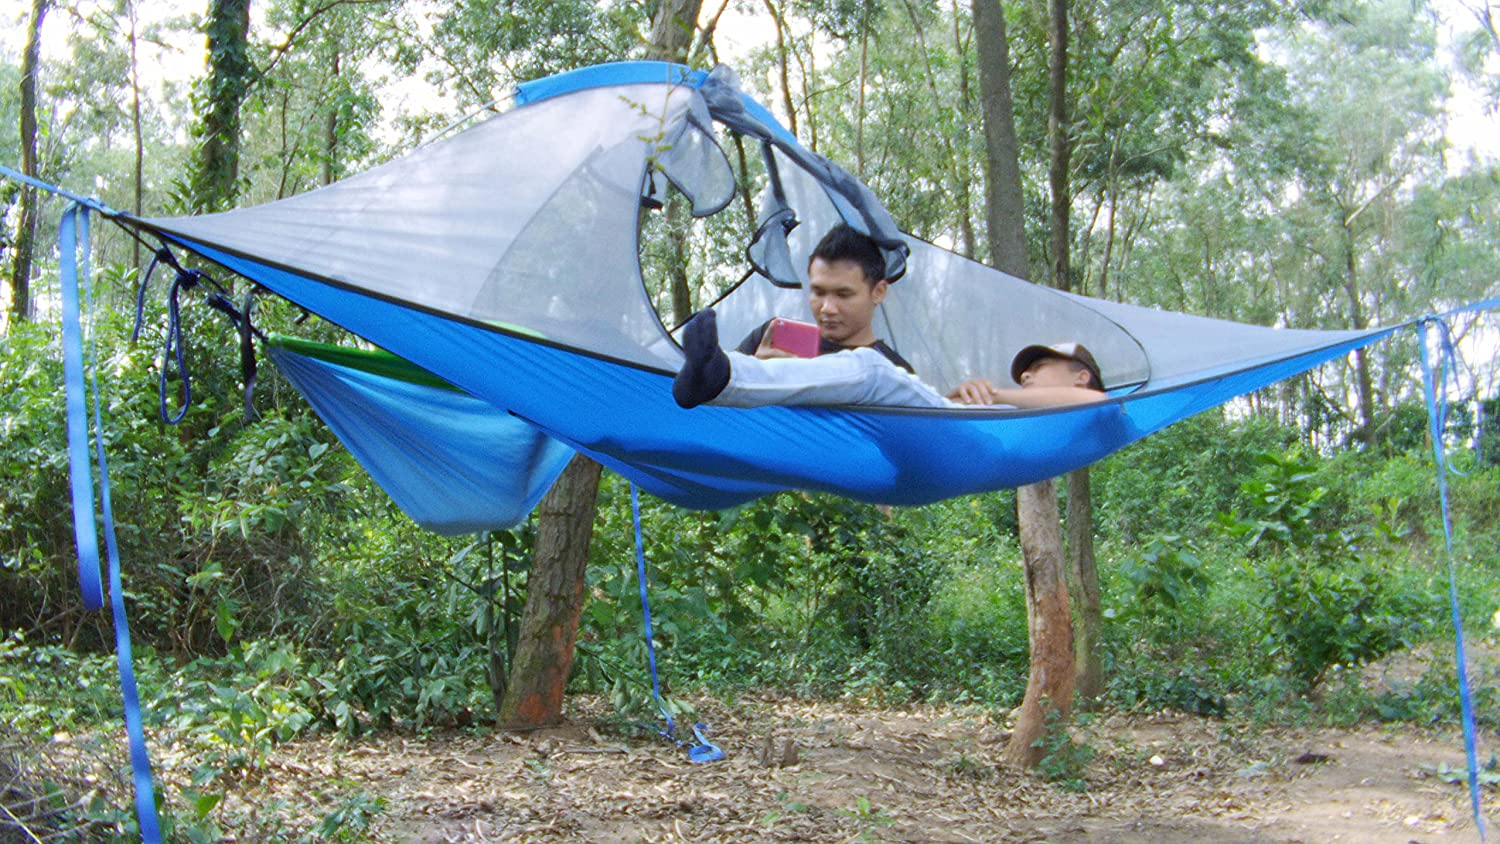 Amazon.com Skysurf Triangle Hanging Tree Tent Lightweight Backpacking 2 Person Tree Tent Triangle Double Hammock (blue) Sports u0026 Outdoors & Amazon.com: Skysurf Triangle Hanging Tree Tent Lightweight ...